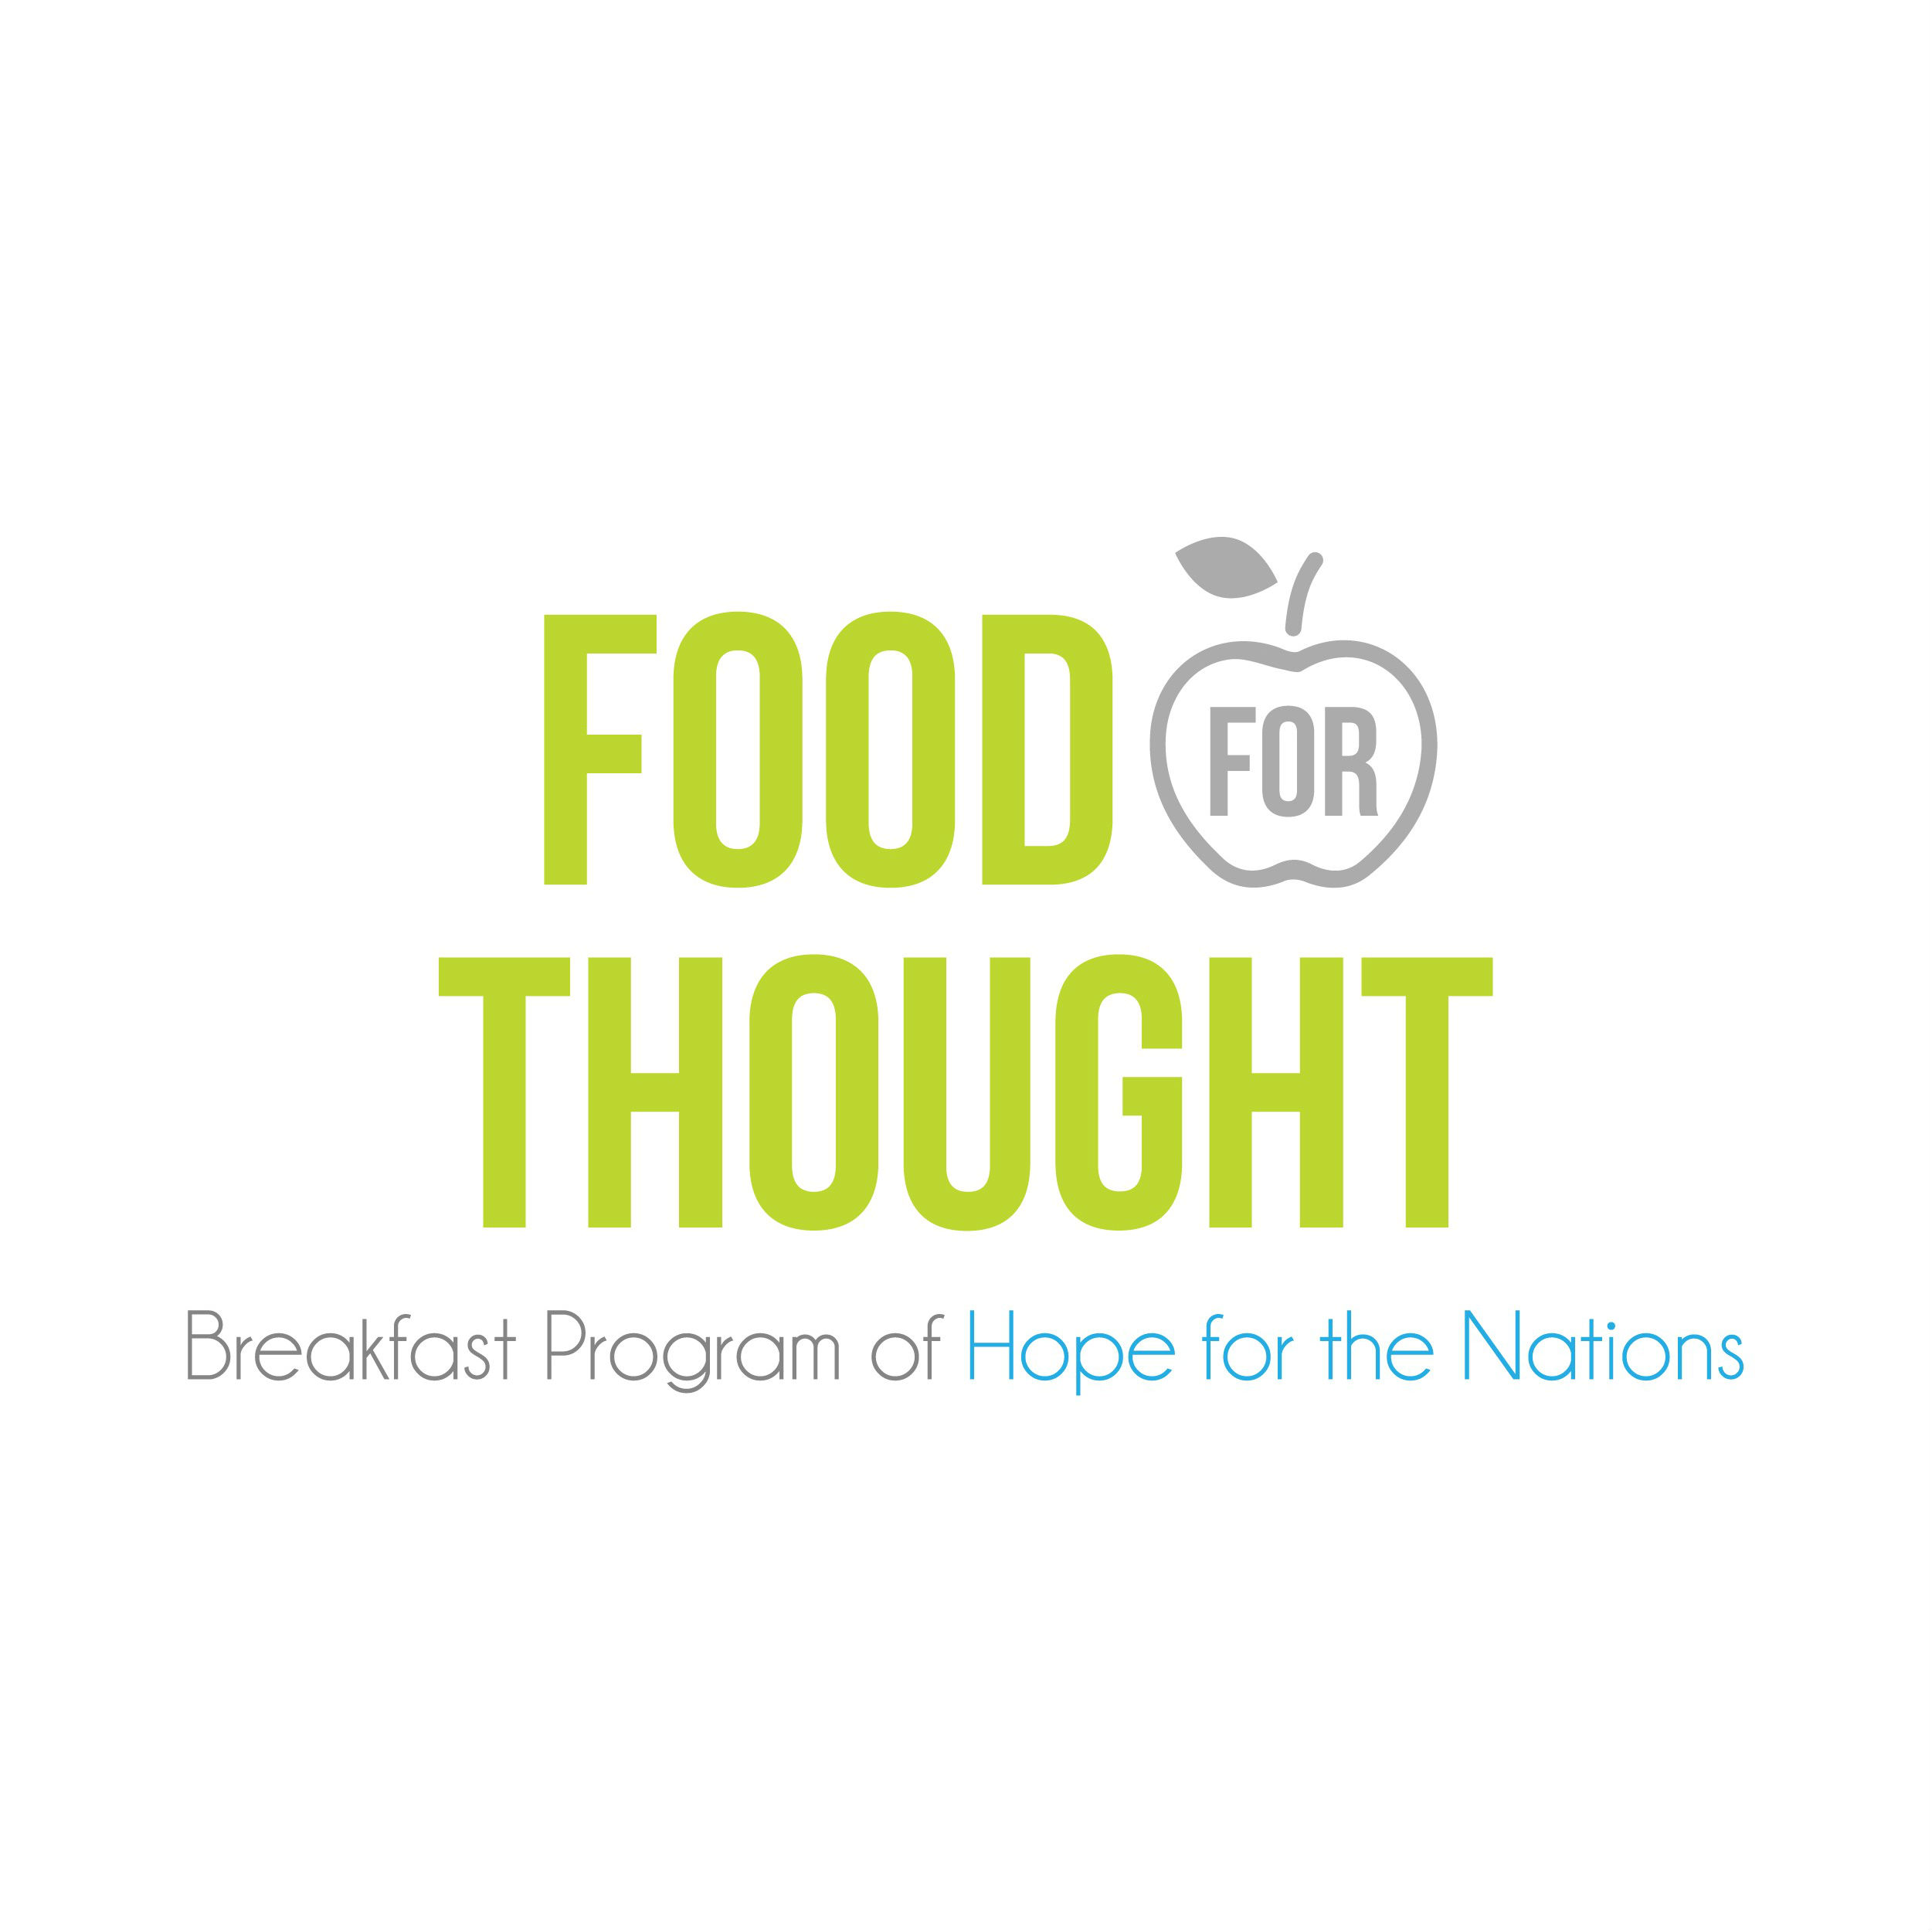 FoodForThought-hftn-03large